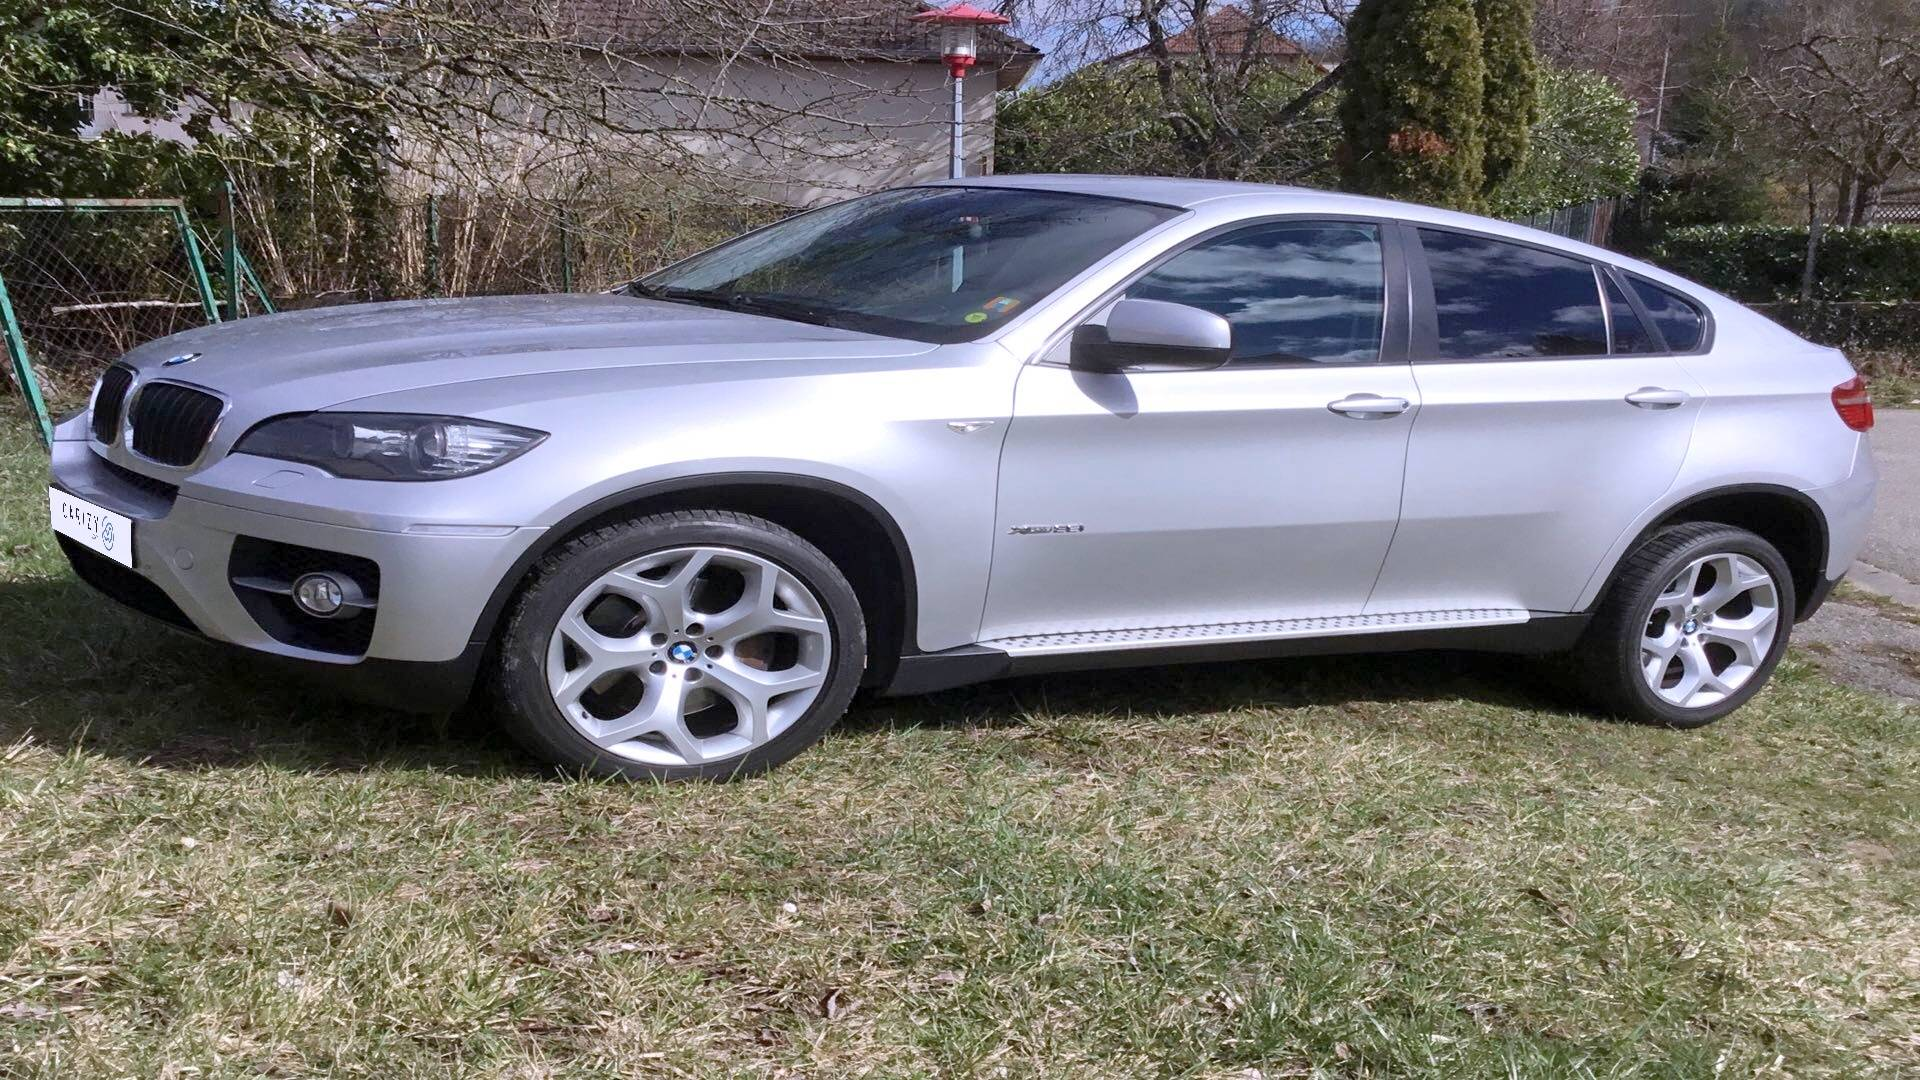 Bmw X6 D Occasion 3 5 I 305 Luxe Xdrive Bva Wittersdorf Carizy